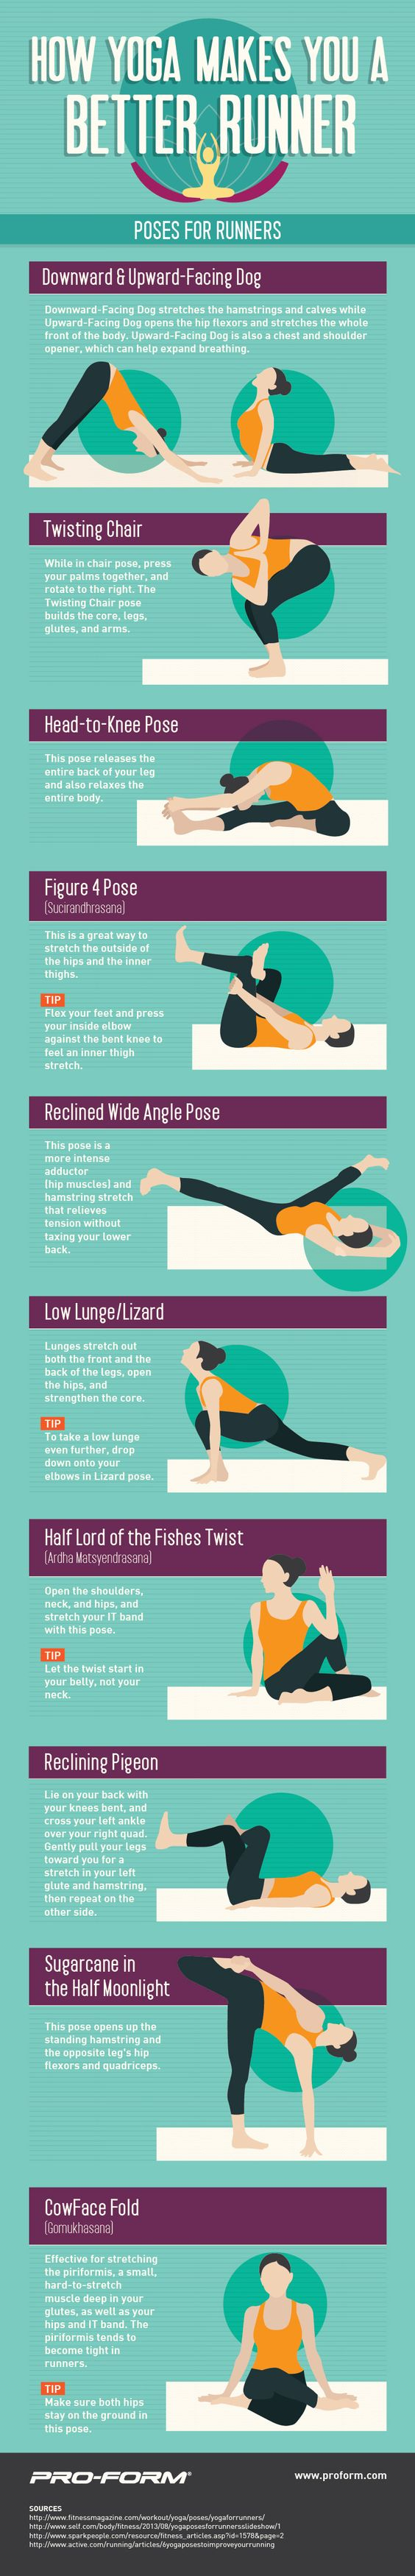 How Yoga Makes You a Better Runner: Poses for Runners #infographic #Yoga #Health #Running